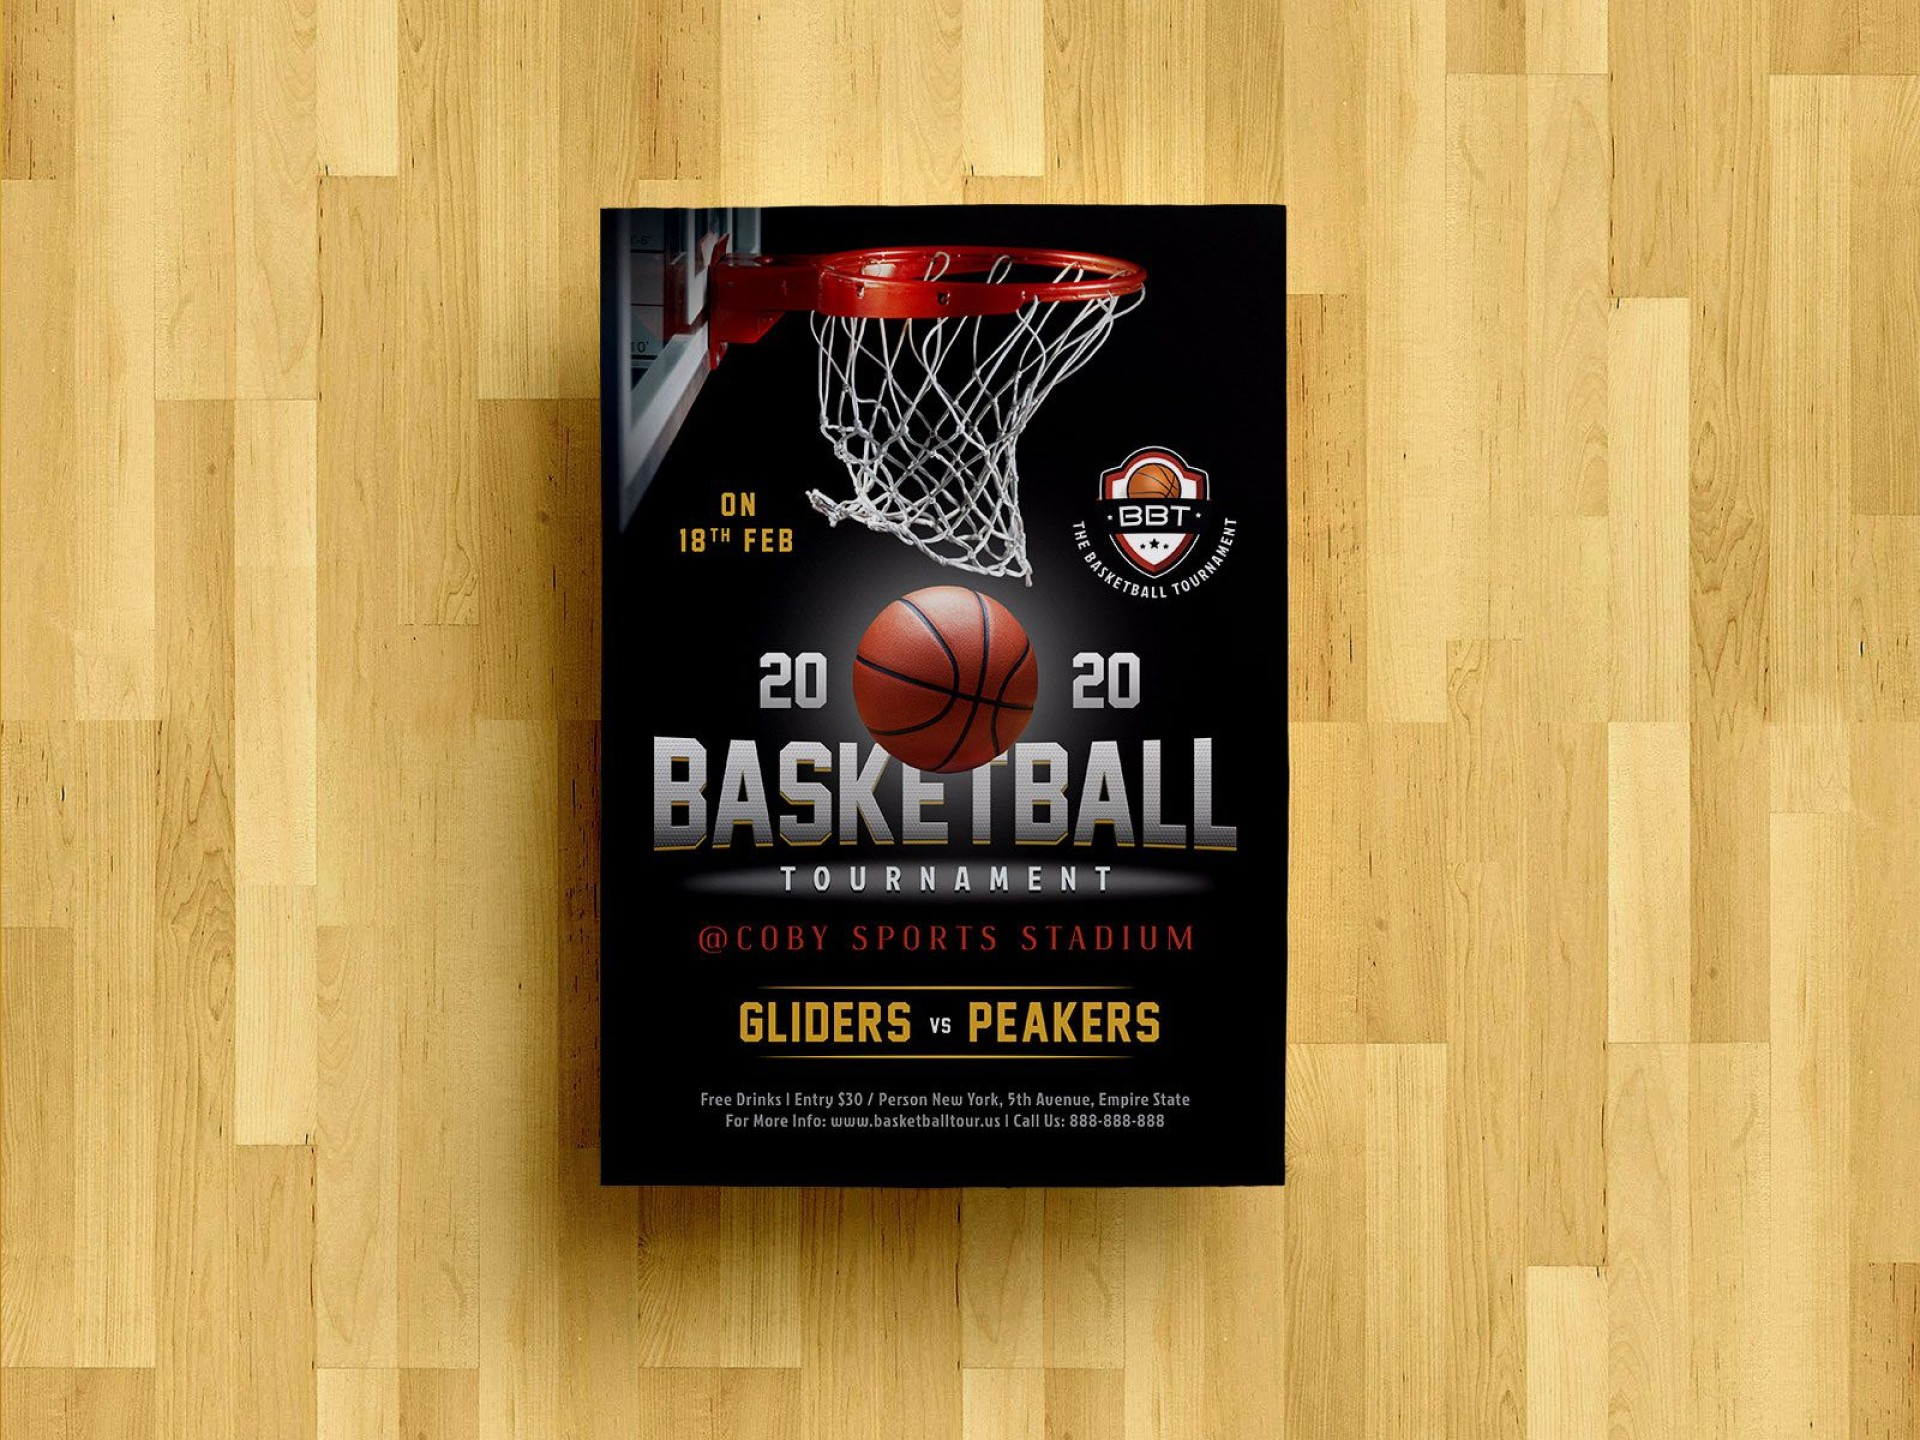 008 Singular Free Basketball Flyer Template Photo  Game 3 On Tournament Word1920